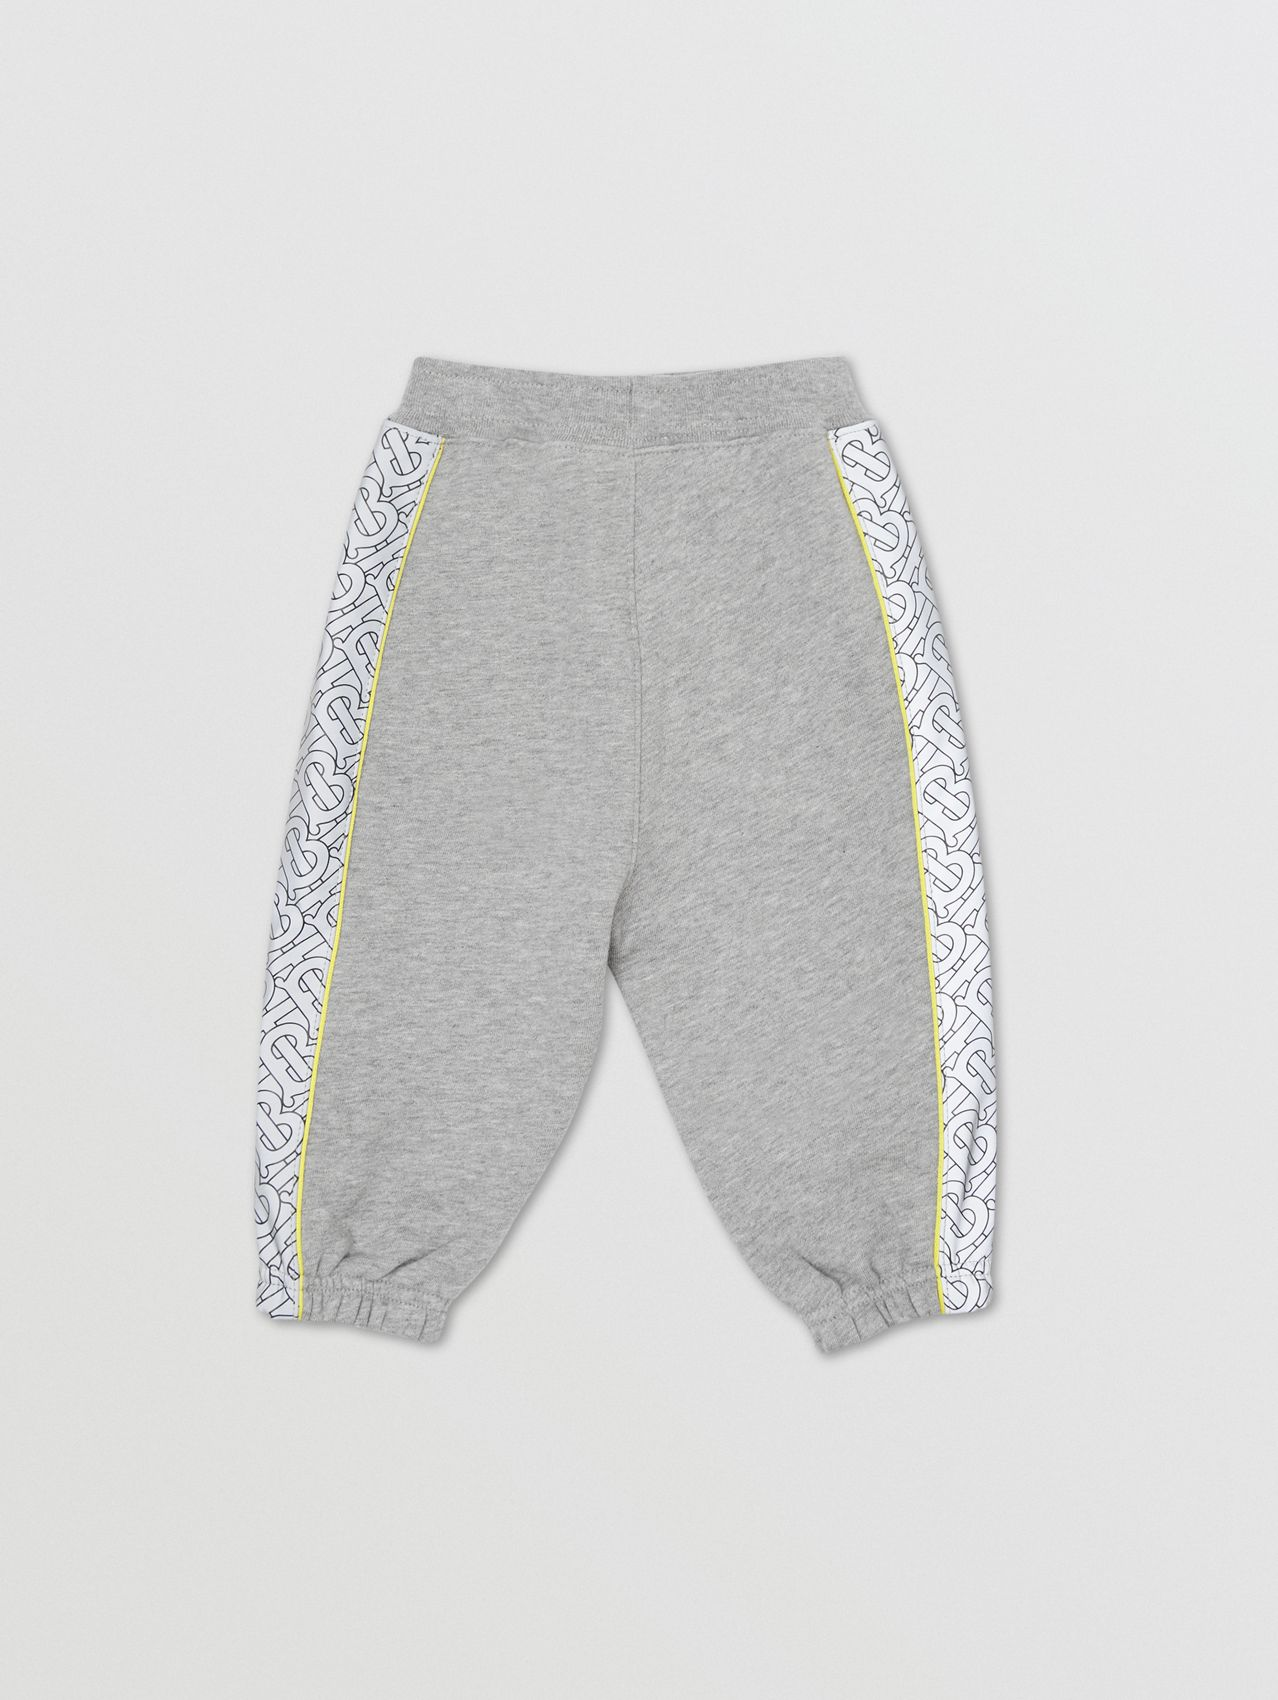 Pantalon de survêtement en coton Monogram in Camaïeu  Gris